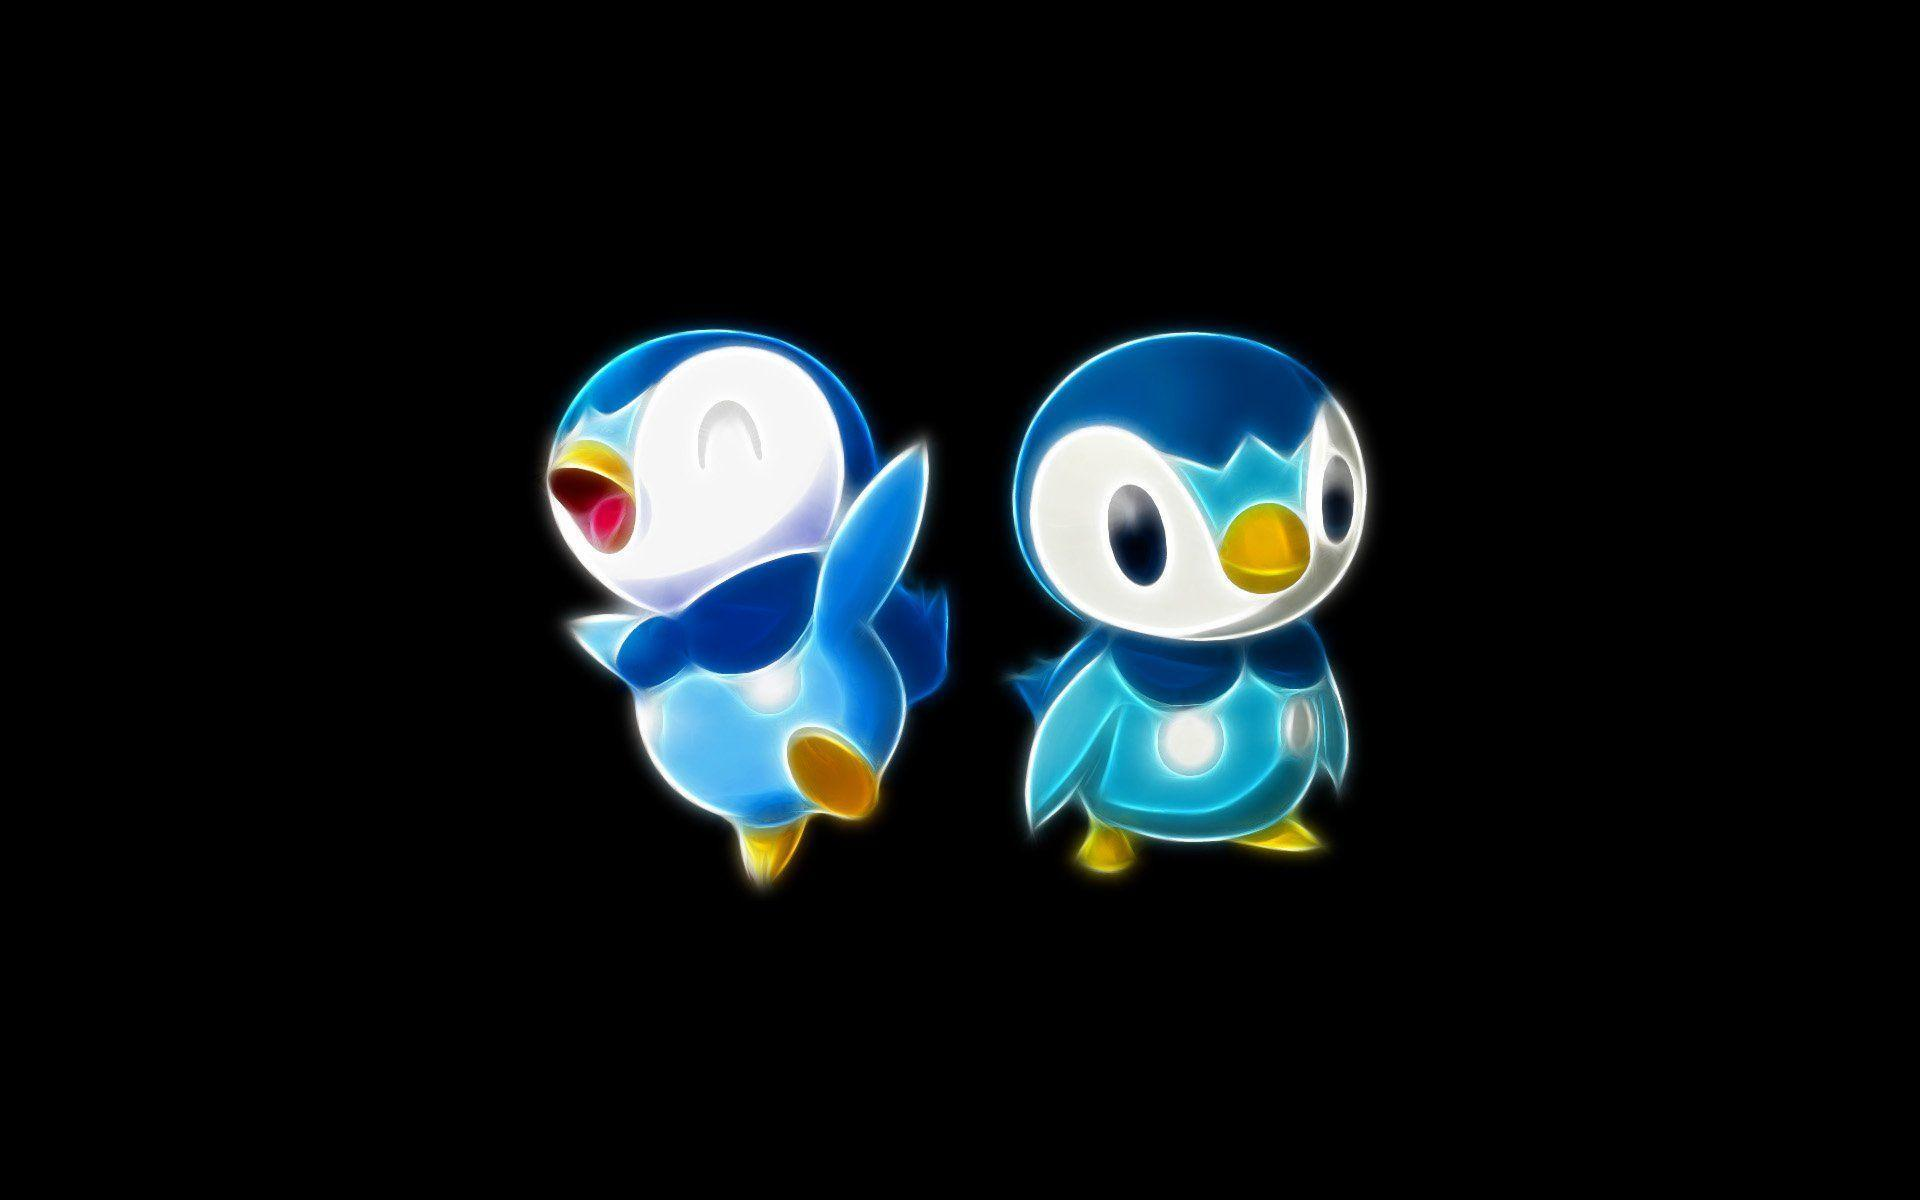 24 Piplup (Pokémon) HD Wallpapers | Backgrounds - Wallpaper Abyss